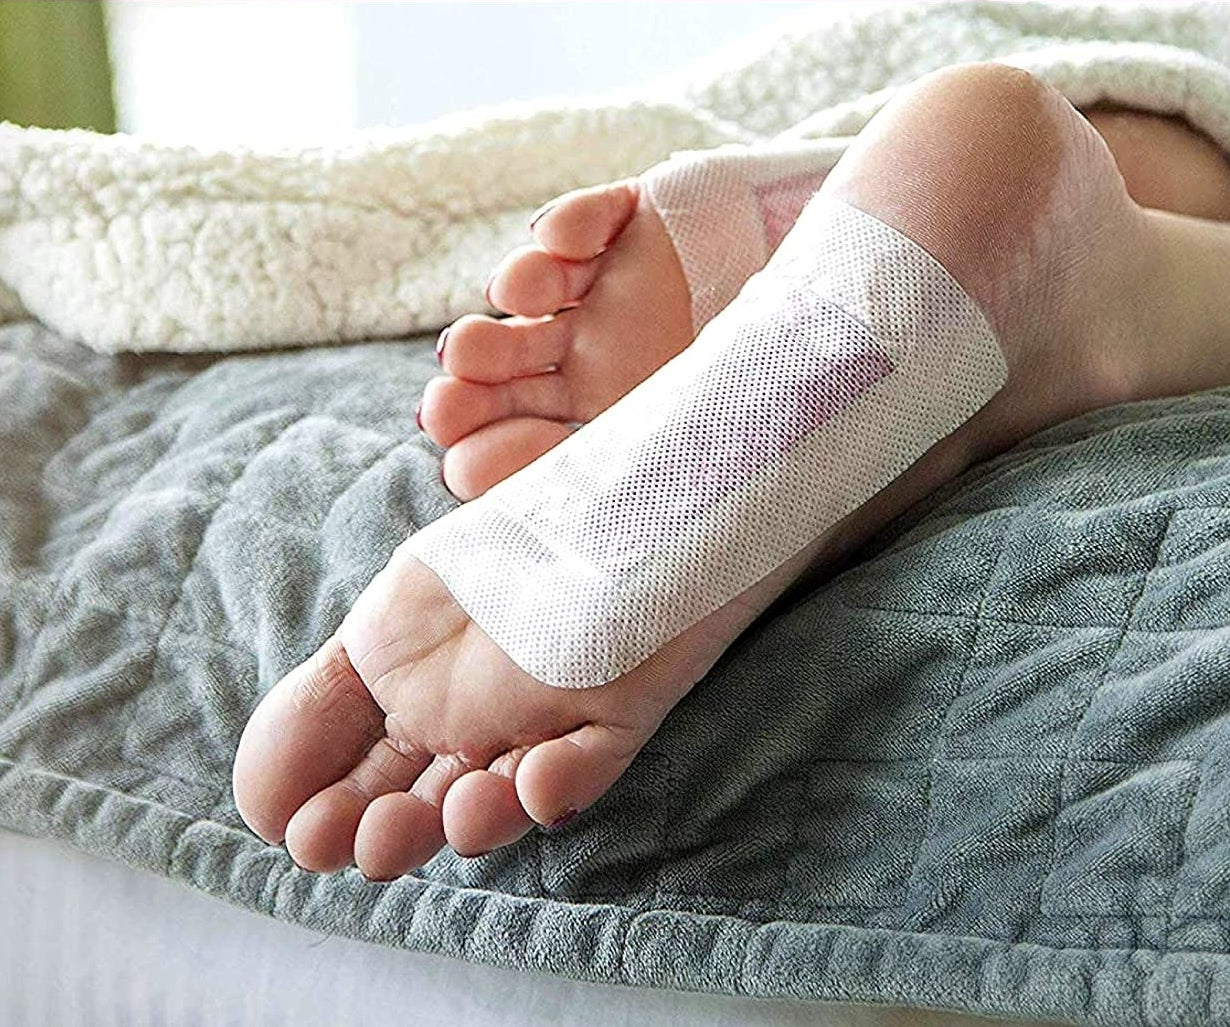 A close up of the bottom of a person's feet where the pads have been applied